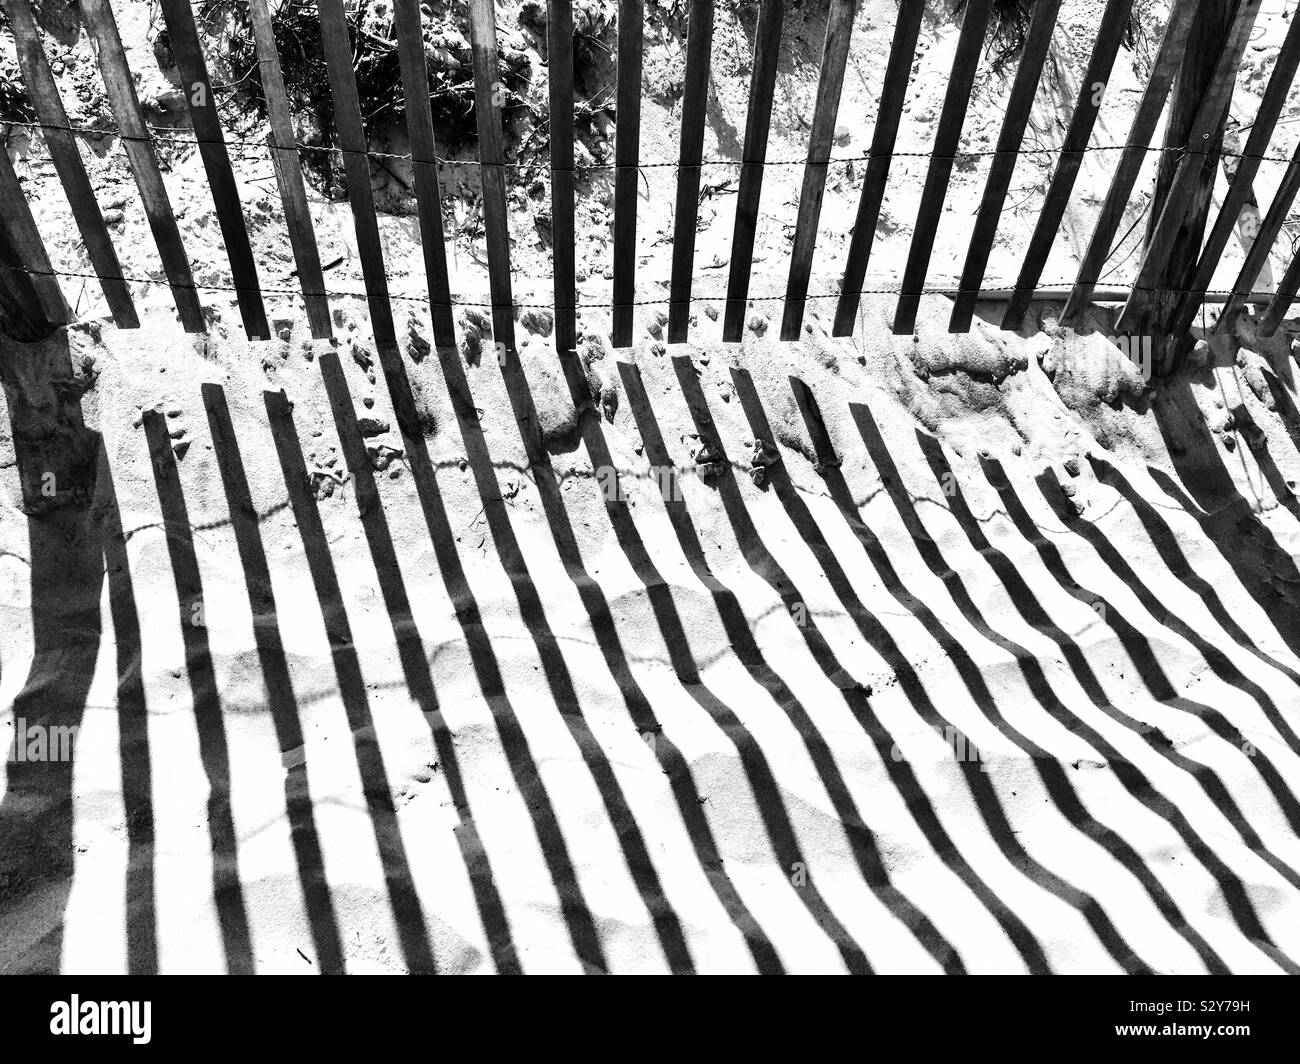 A wooden picket fence along a sandy footpath leading to the beach has its shadow forming an abstract pattern in the sand. Stock Photo